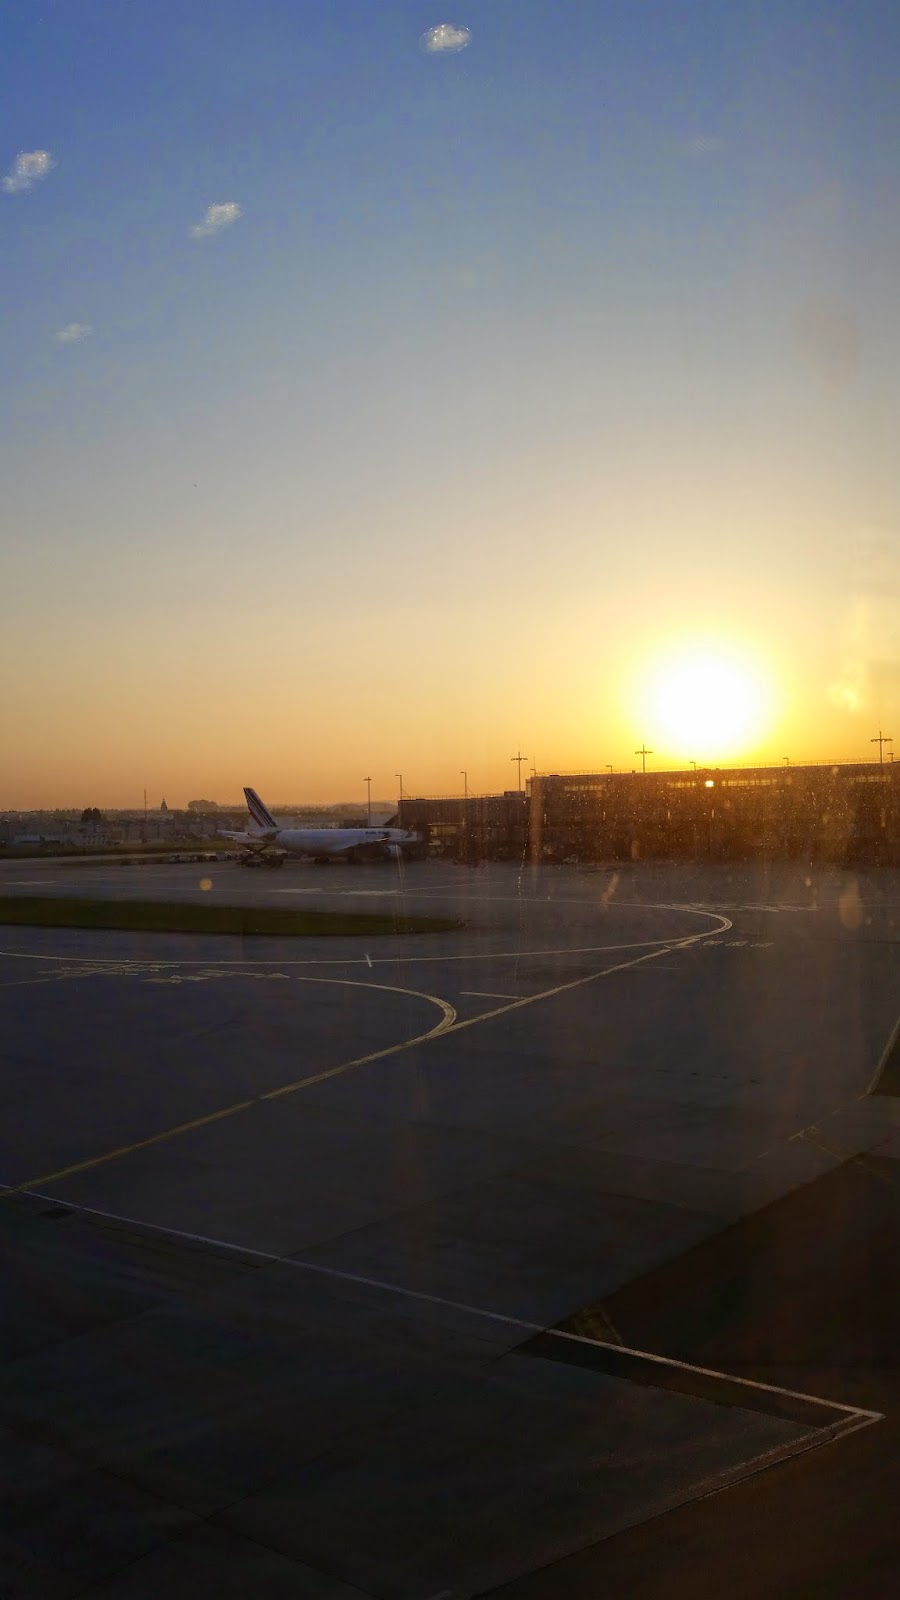 Sunrise at the airport